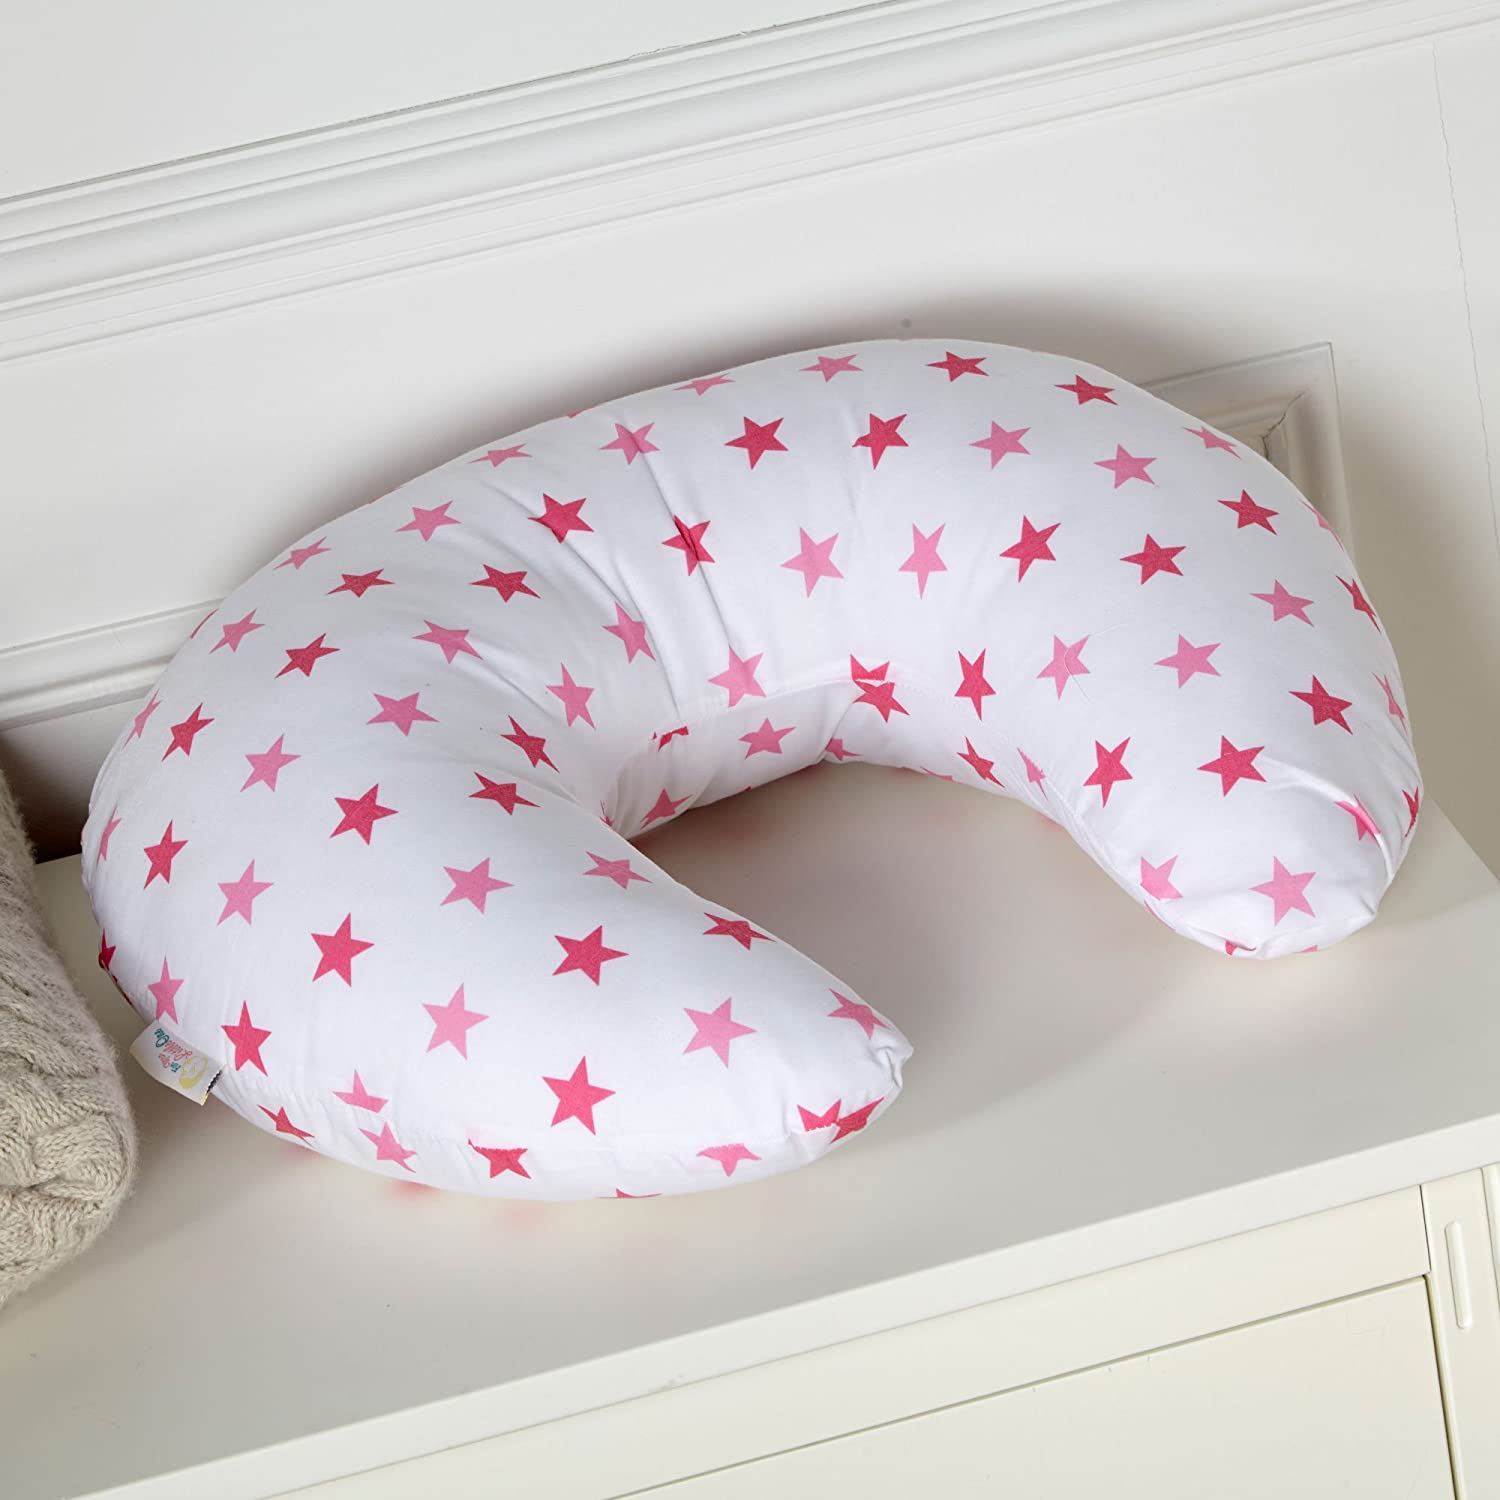 Breast Feeding Nursing U Pillow Little Star Pink For-Your-Little-One